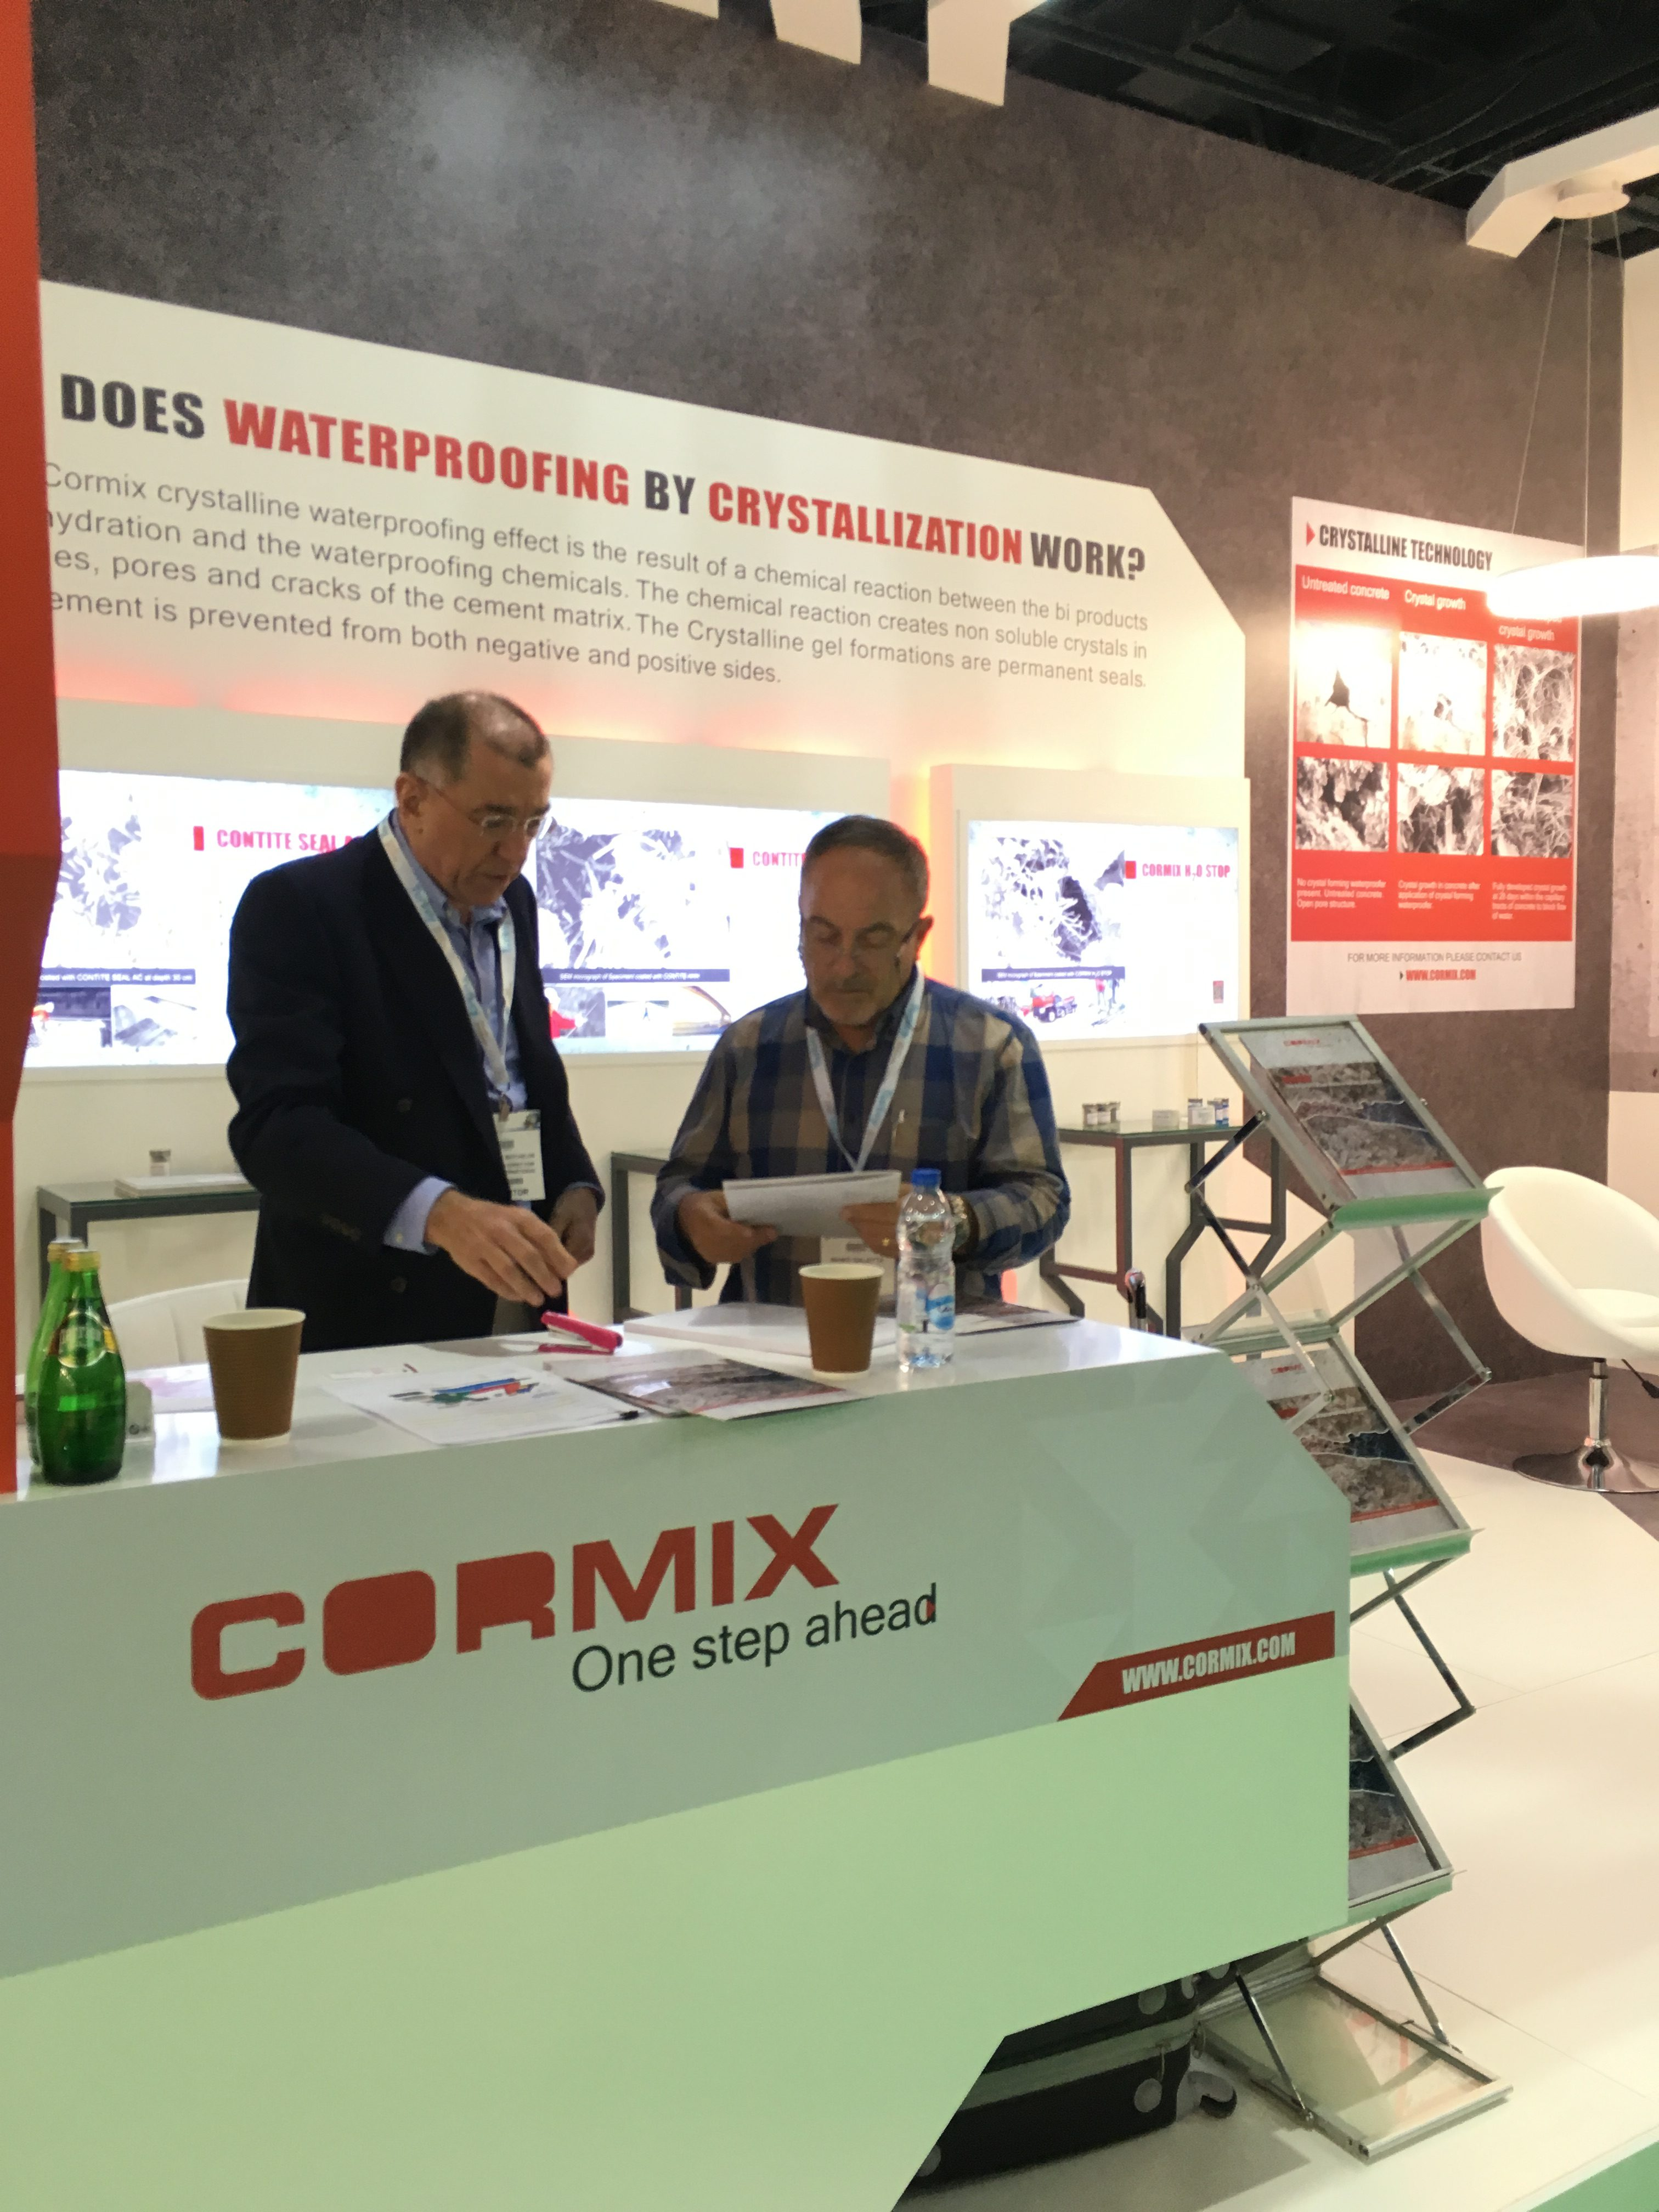 Cormix relaunched waterproofing by crystallization at The